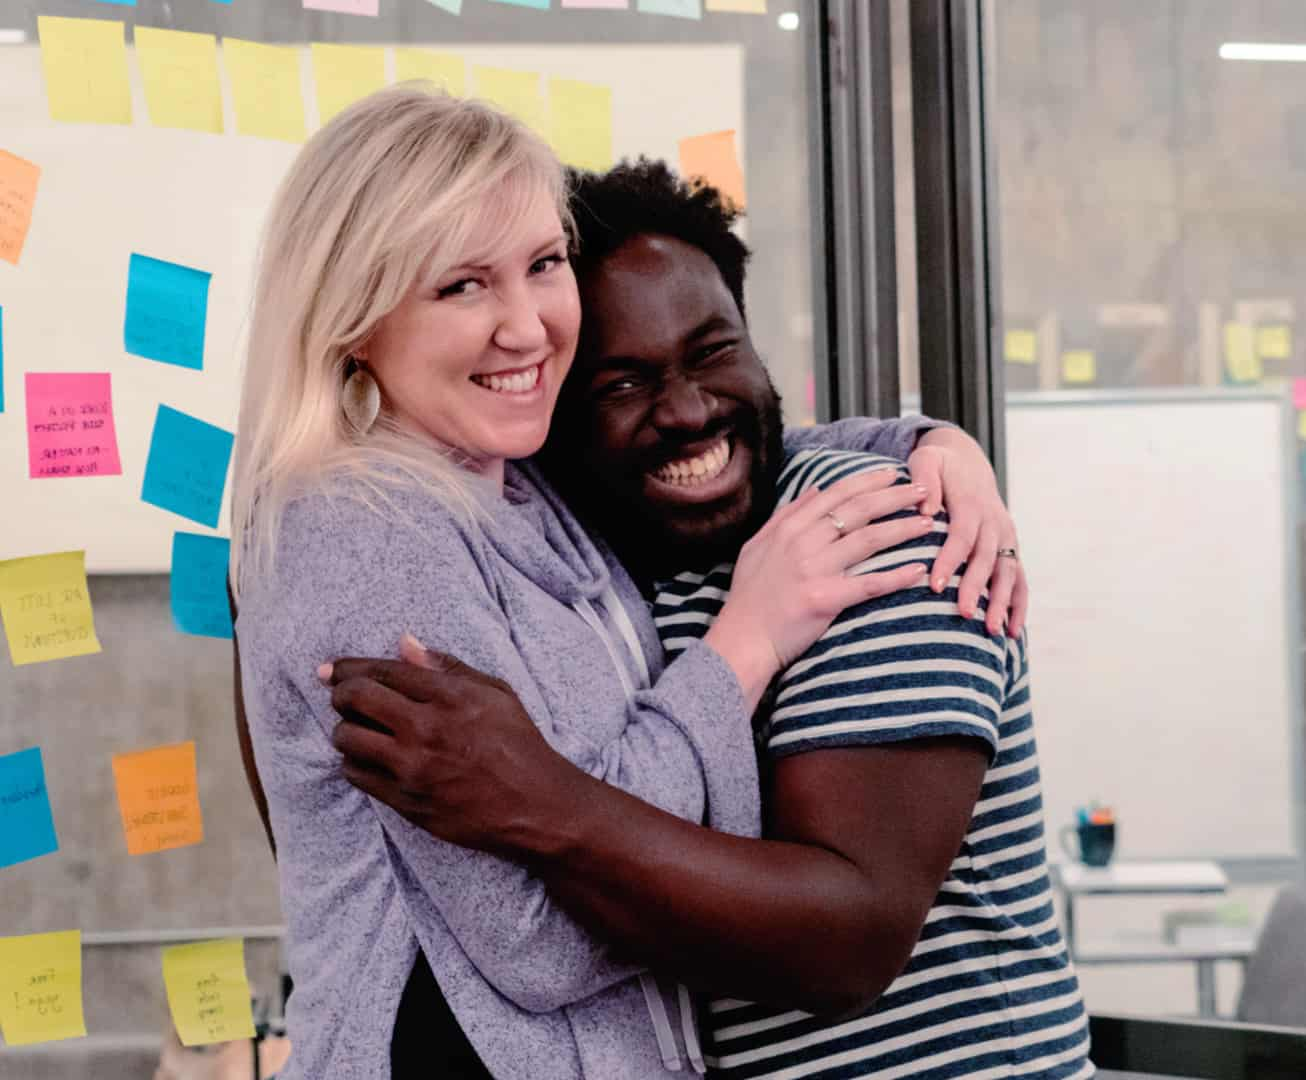 Two Diverse Coding Students Hugging Inside A Coding Bootcamp